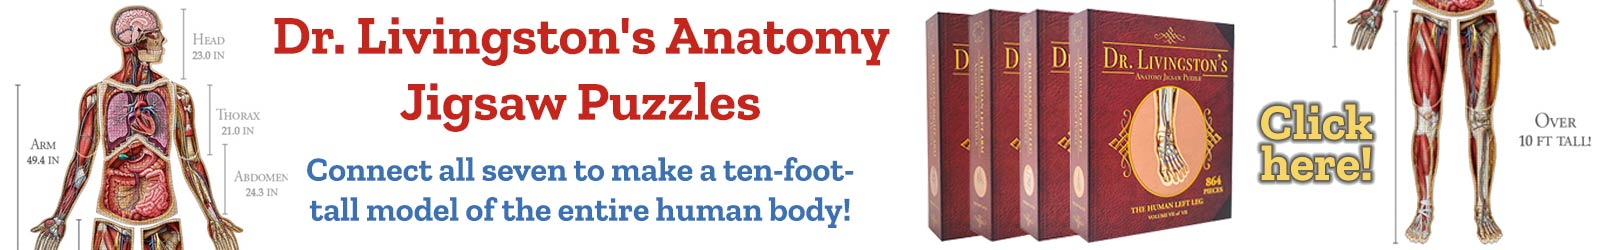 Dr. Livingston's Anatomy Jigsaw Puzzles Connect all seven to make a ten-foot-tall model of the entire human body!